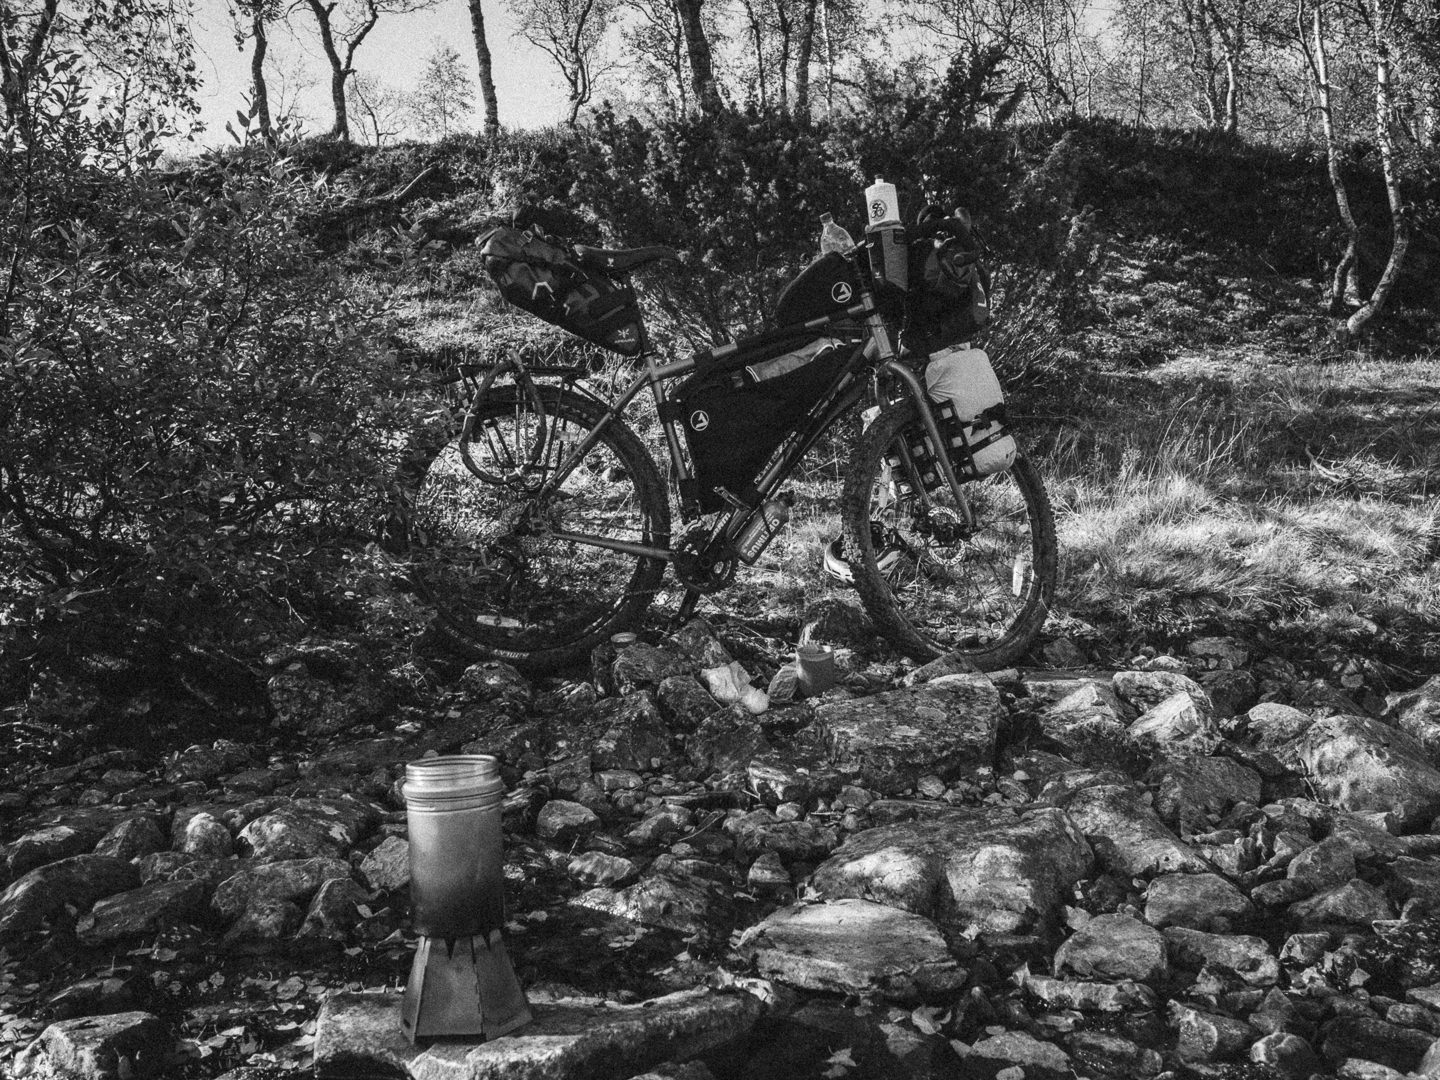 Touring bicycle and a camping stove outside, in black and white.